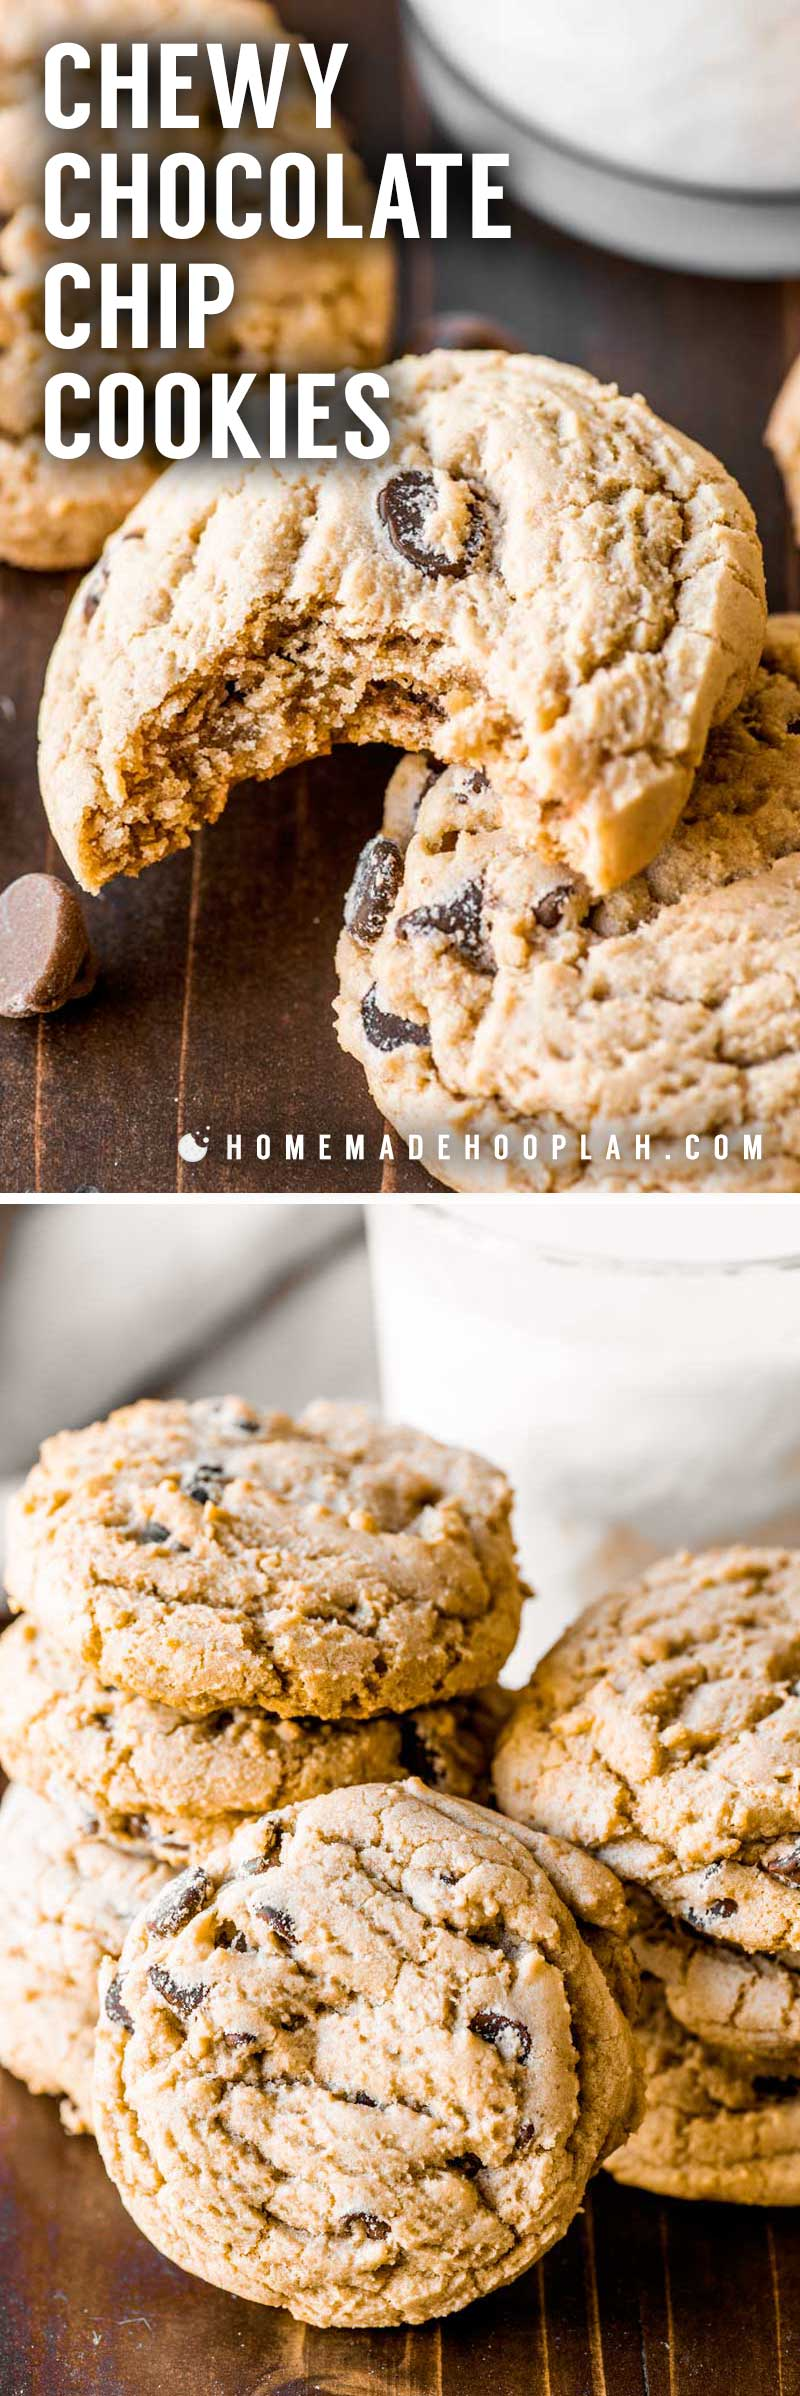 Chewy Chocolate Chip Cookies! Take the classic chocolate chip cookie and add a special ingredient to make them ultra soft and decadently chewy. It's impossible to eat just one! | HomemadeHooplah.com